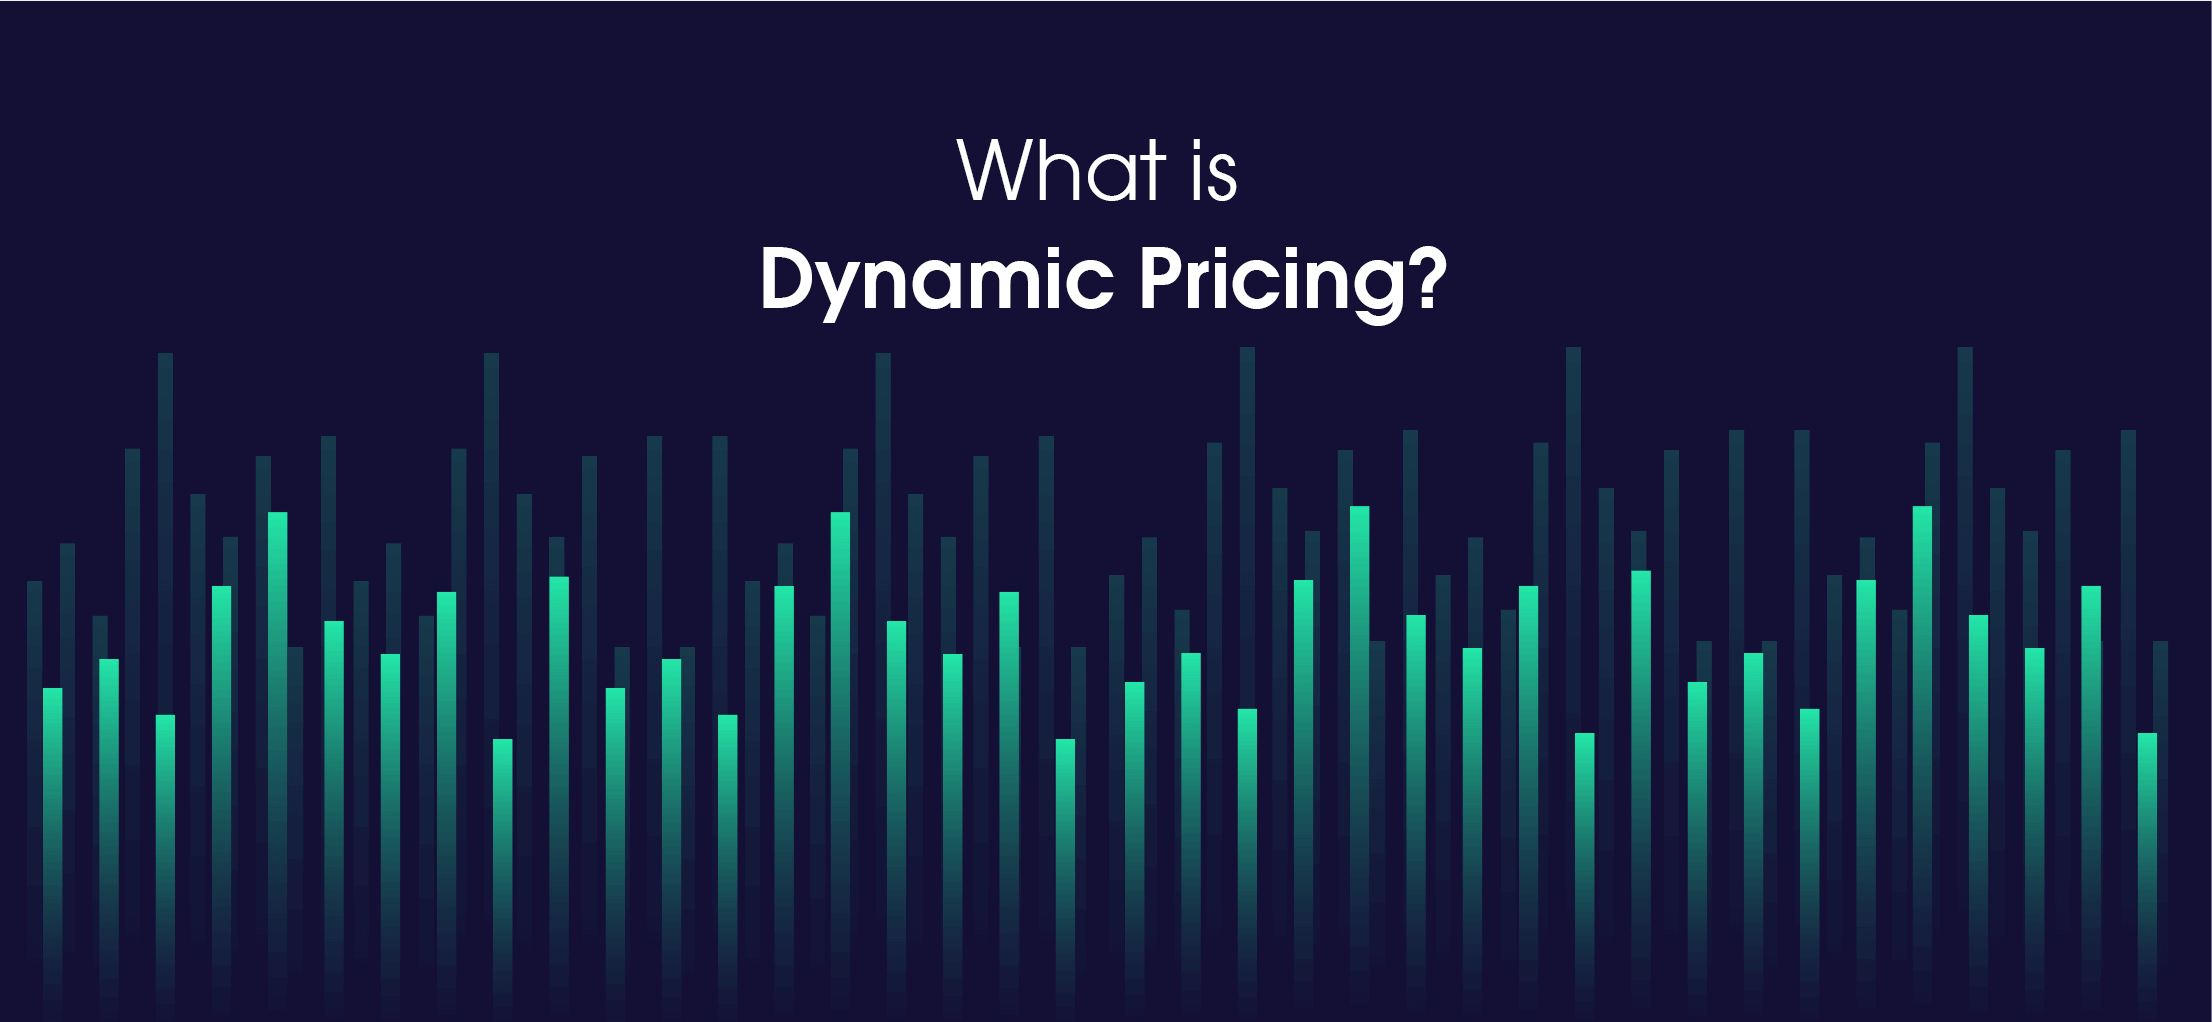 What is Dynamic Pricing?